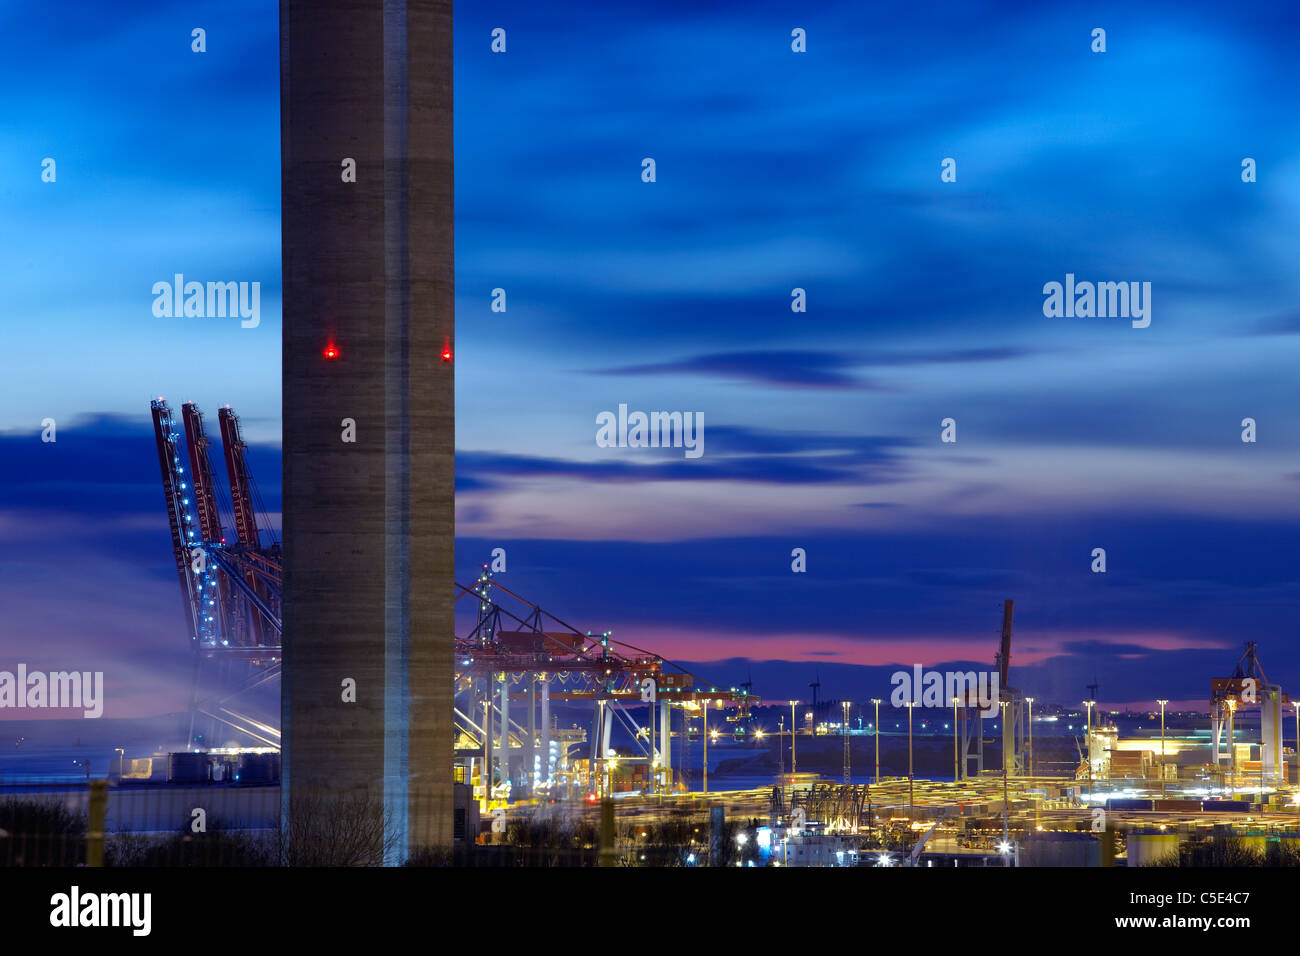 Close-up of a chimney with cranes and factories in the background at dusk, Gothenburg - Stock Image